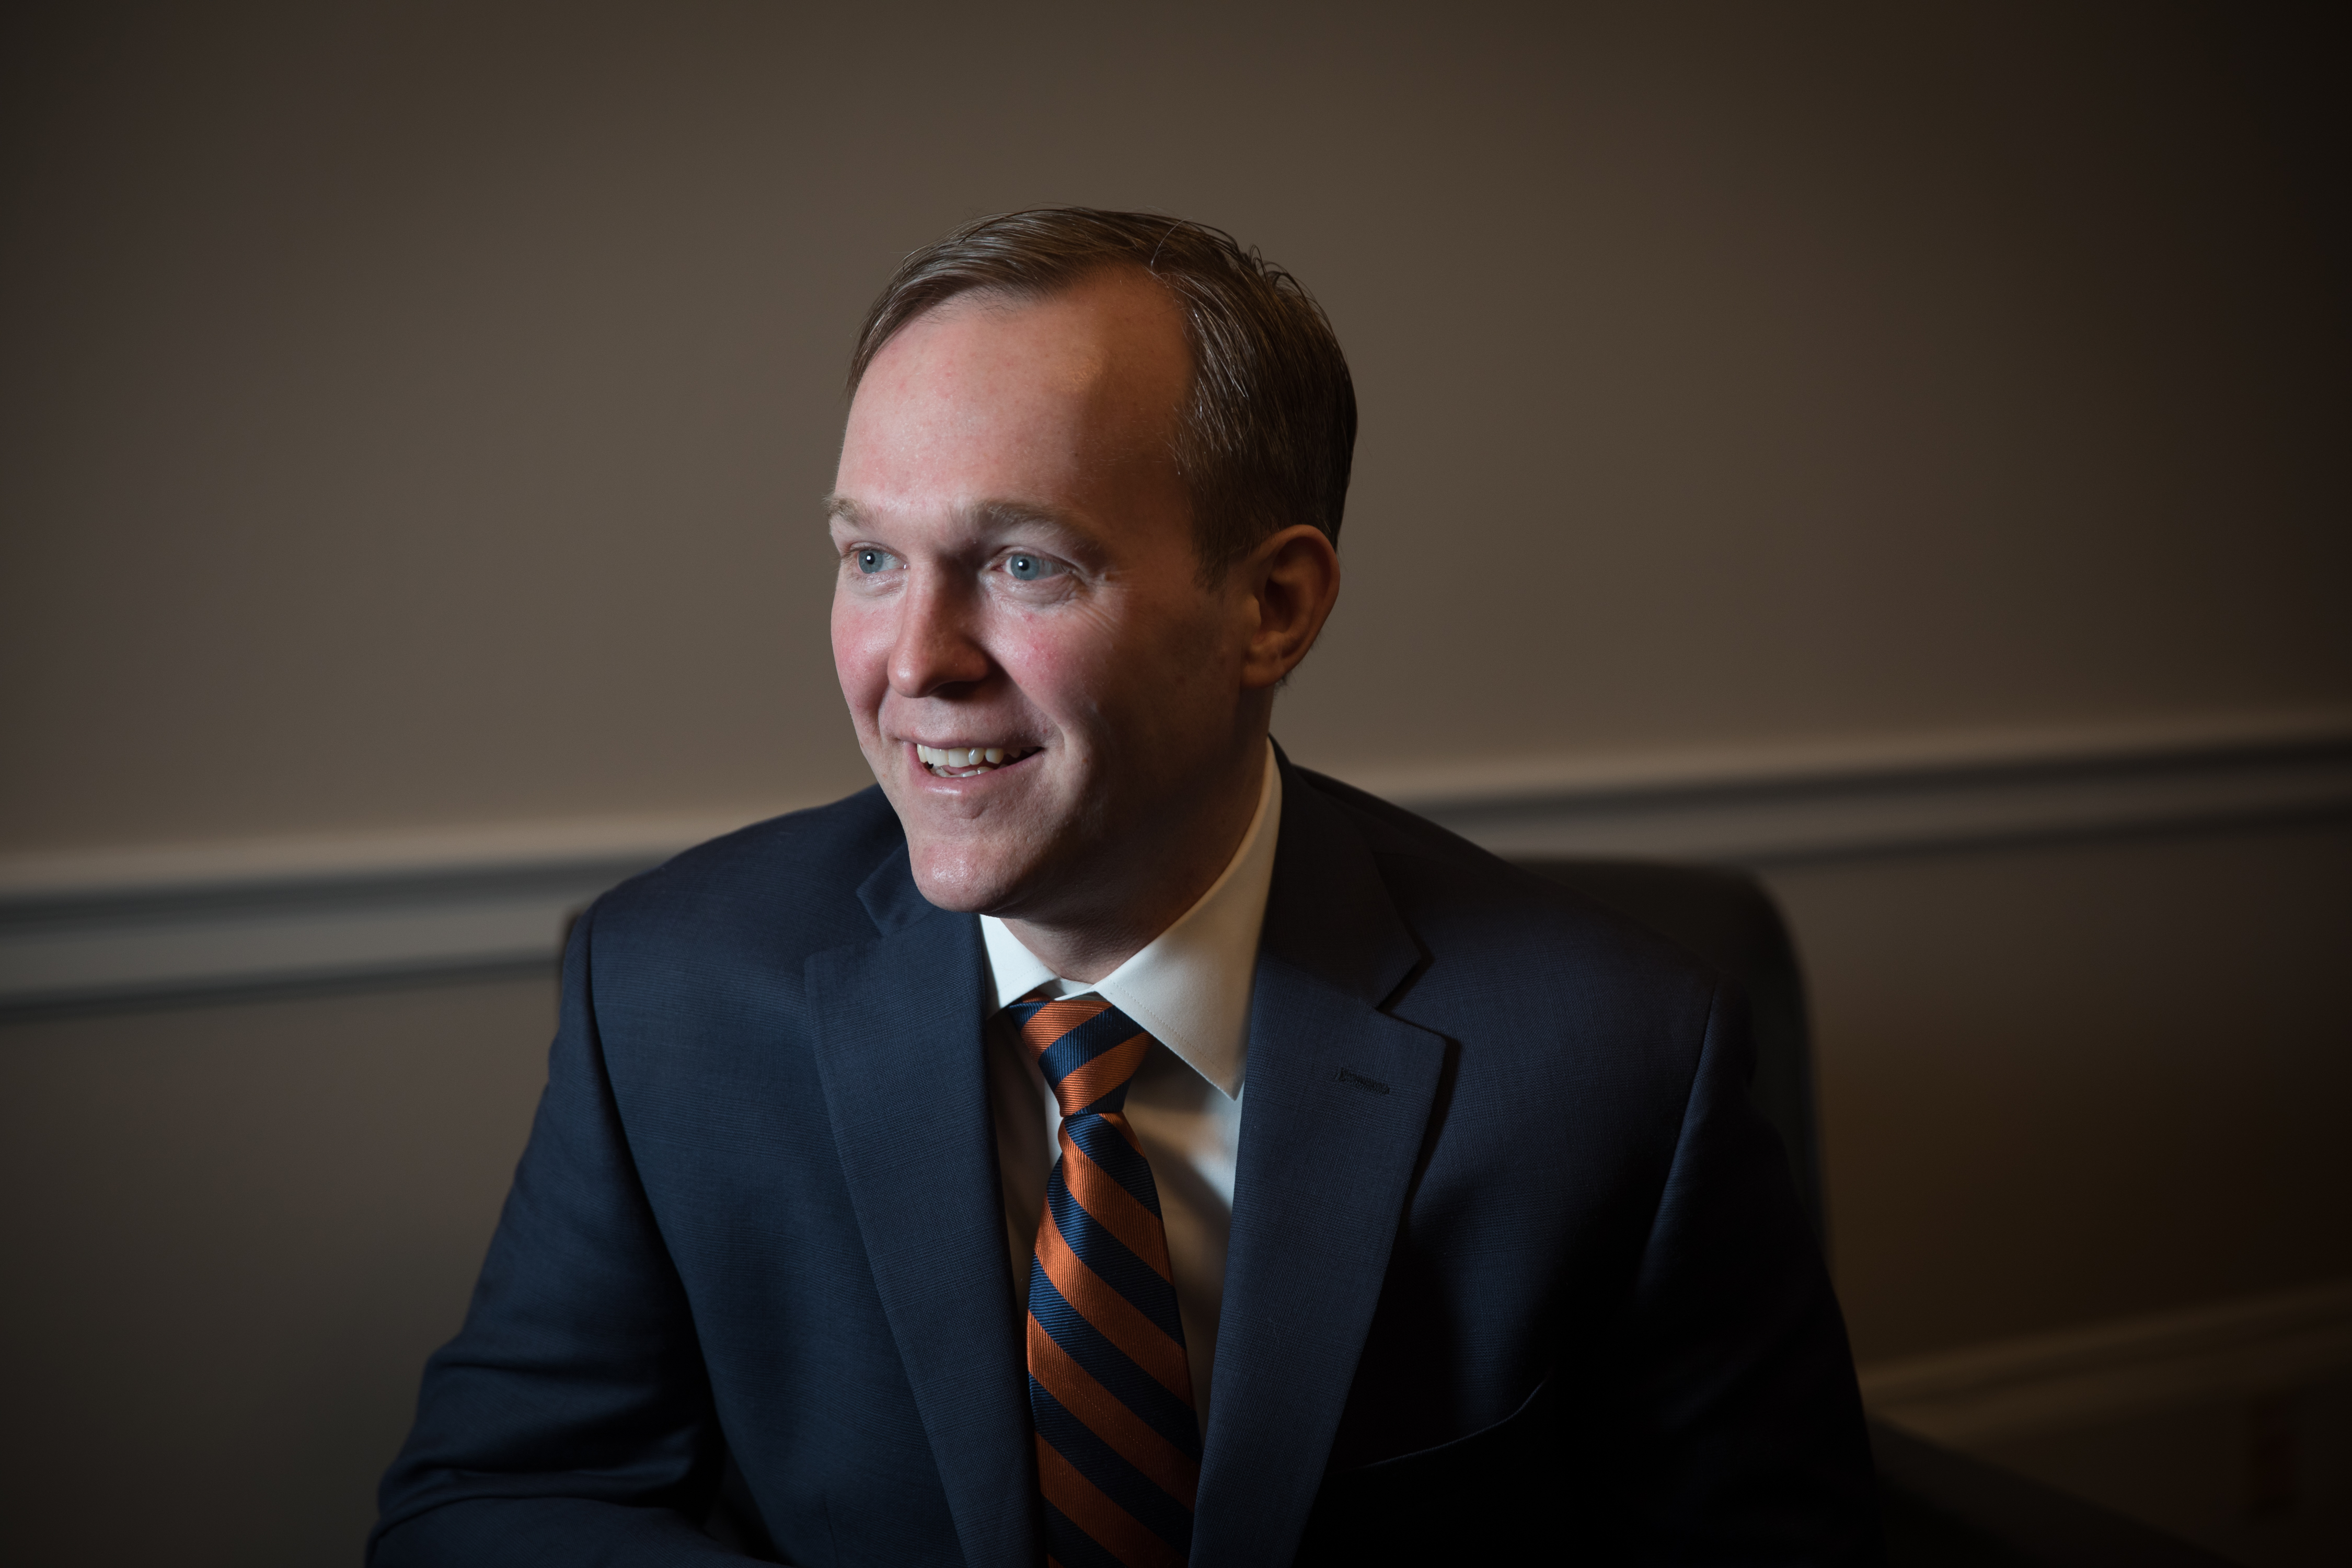 Rep. Ben McAdams, D-Utah, holds interview in his new office on Capitol Hill in Washington, D.C., on Thursday, Jan. 3, 2019.